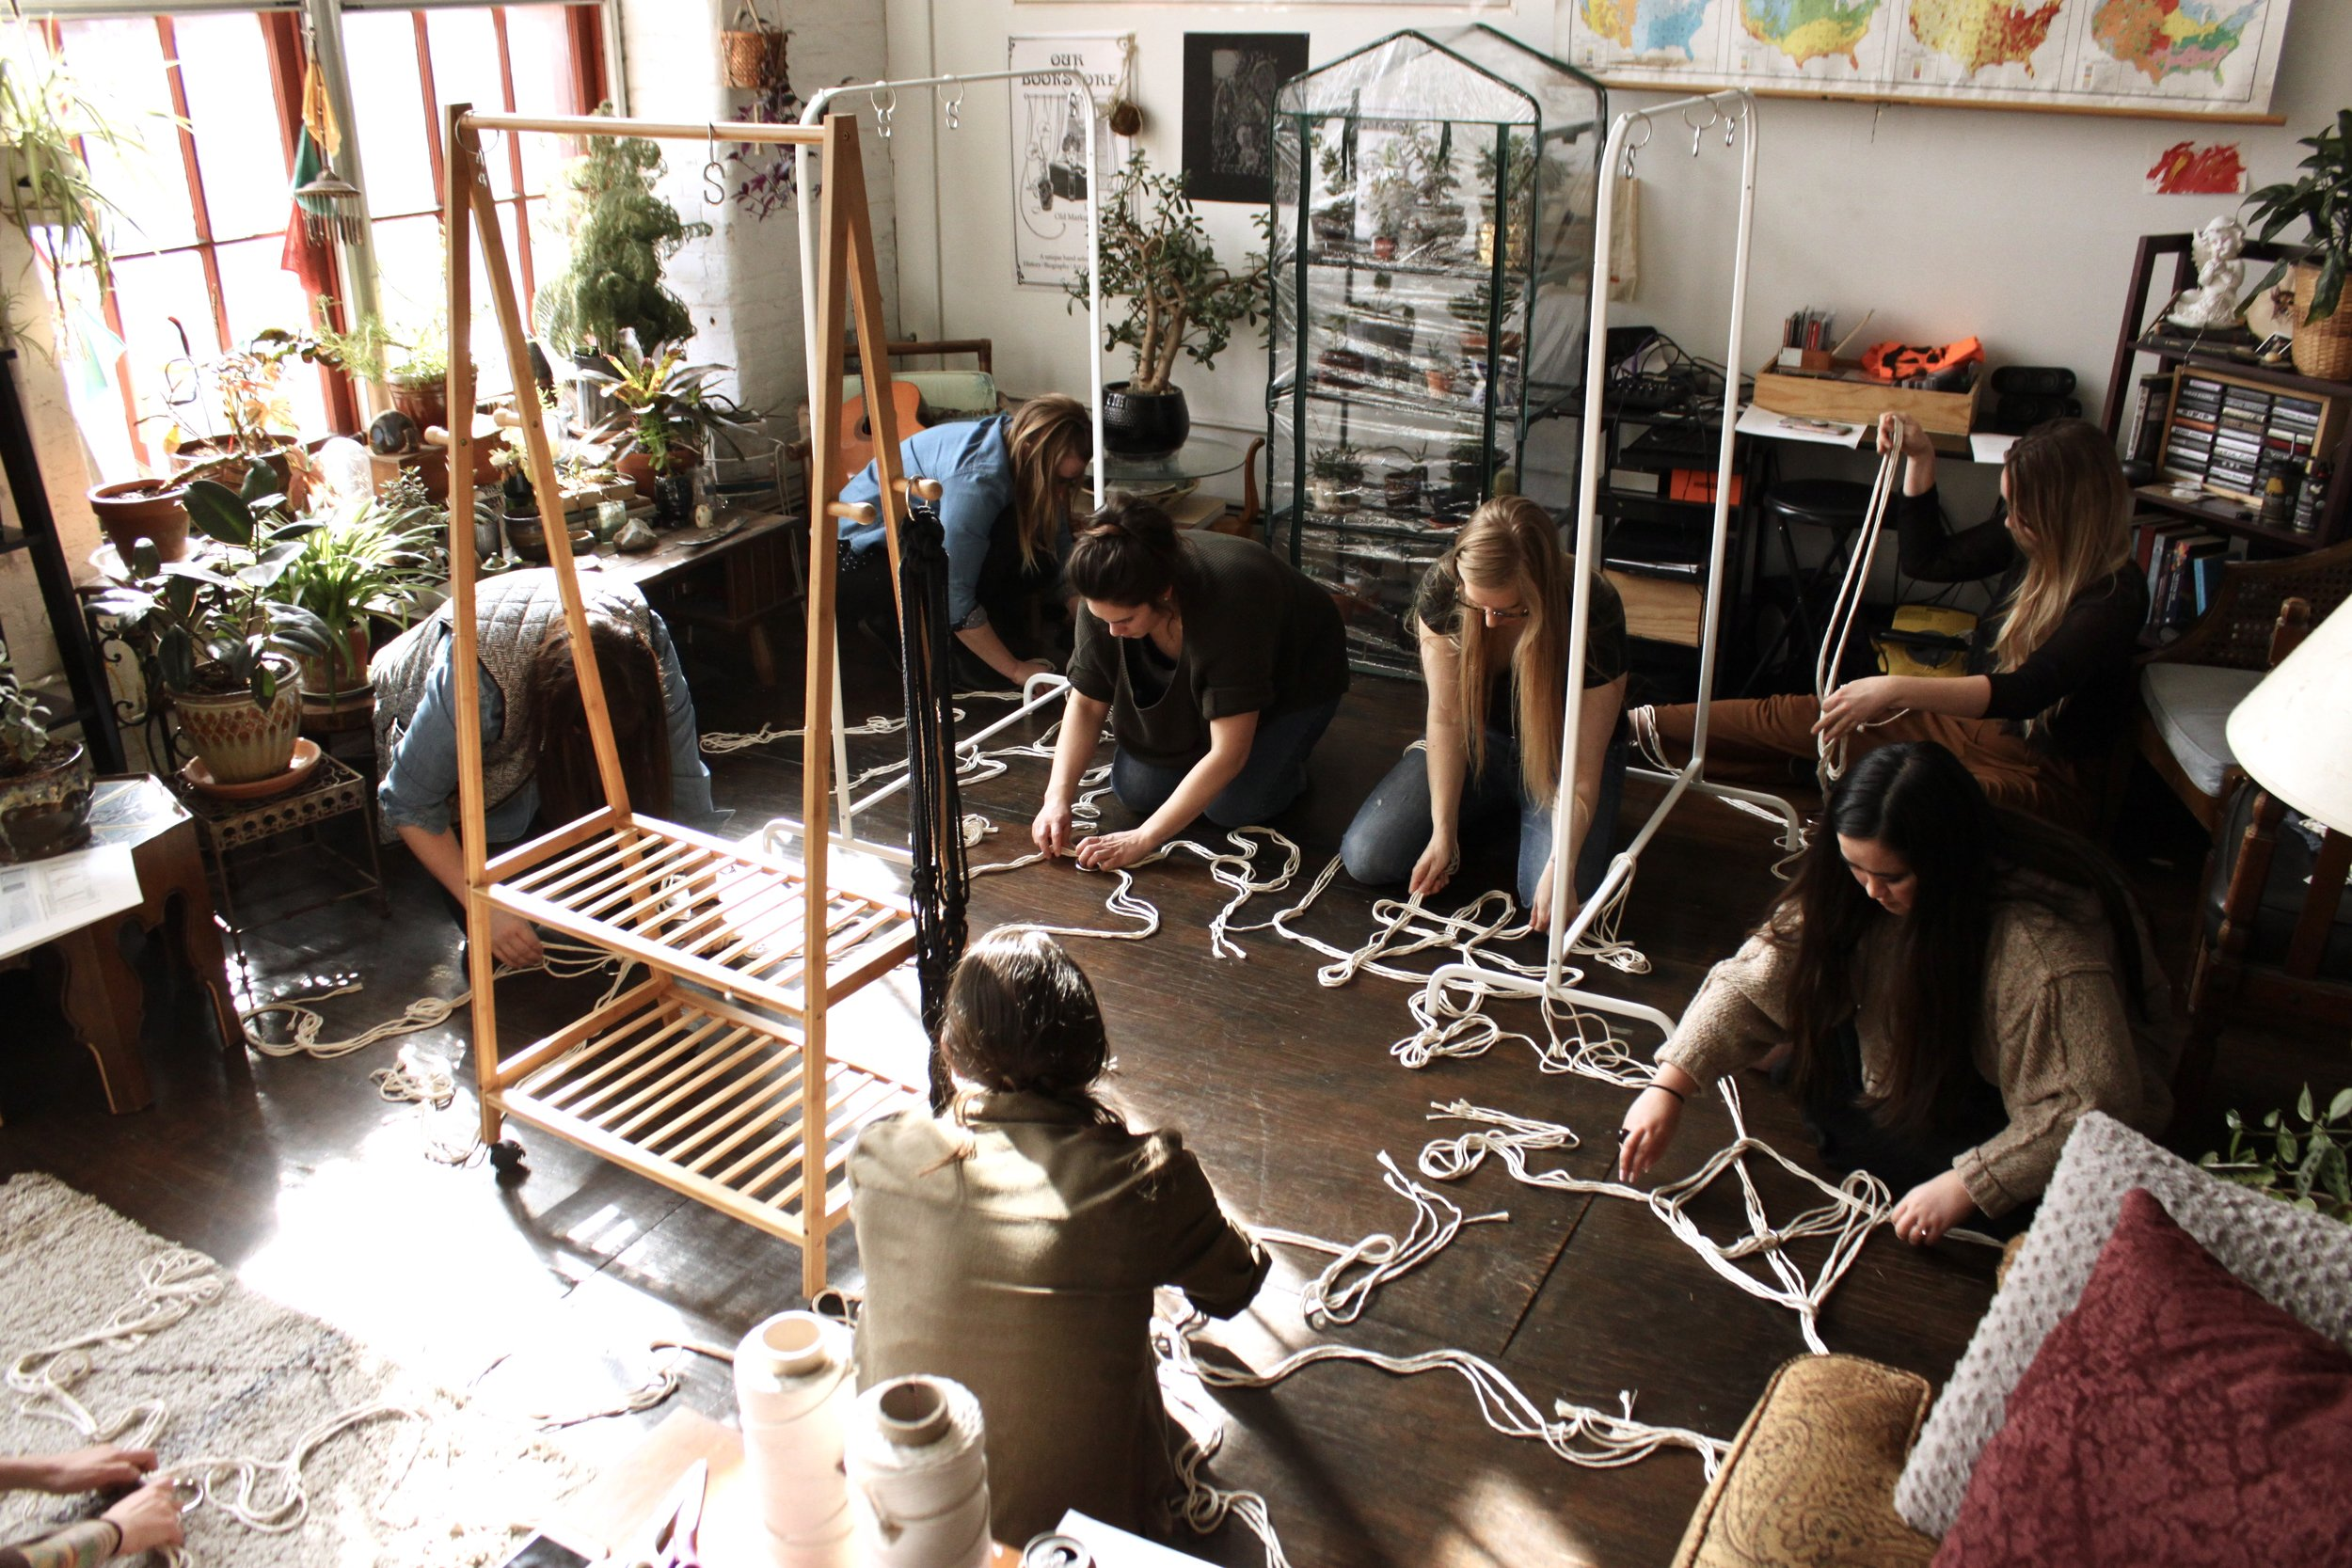 Students master the 4-ply lanyard in the Green House home studio.